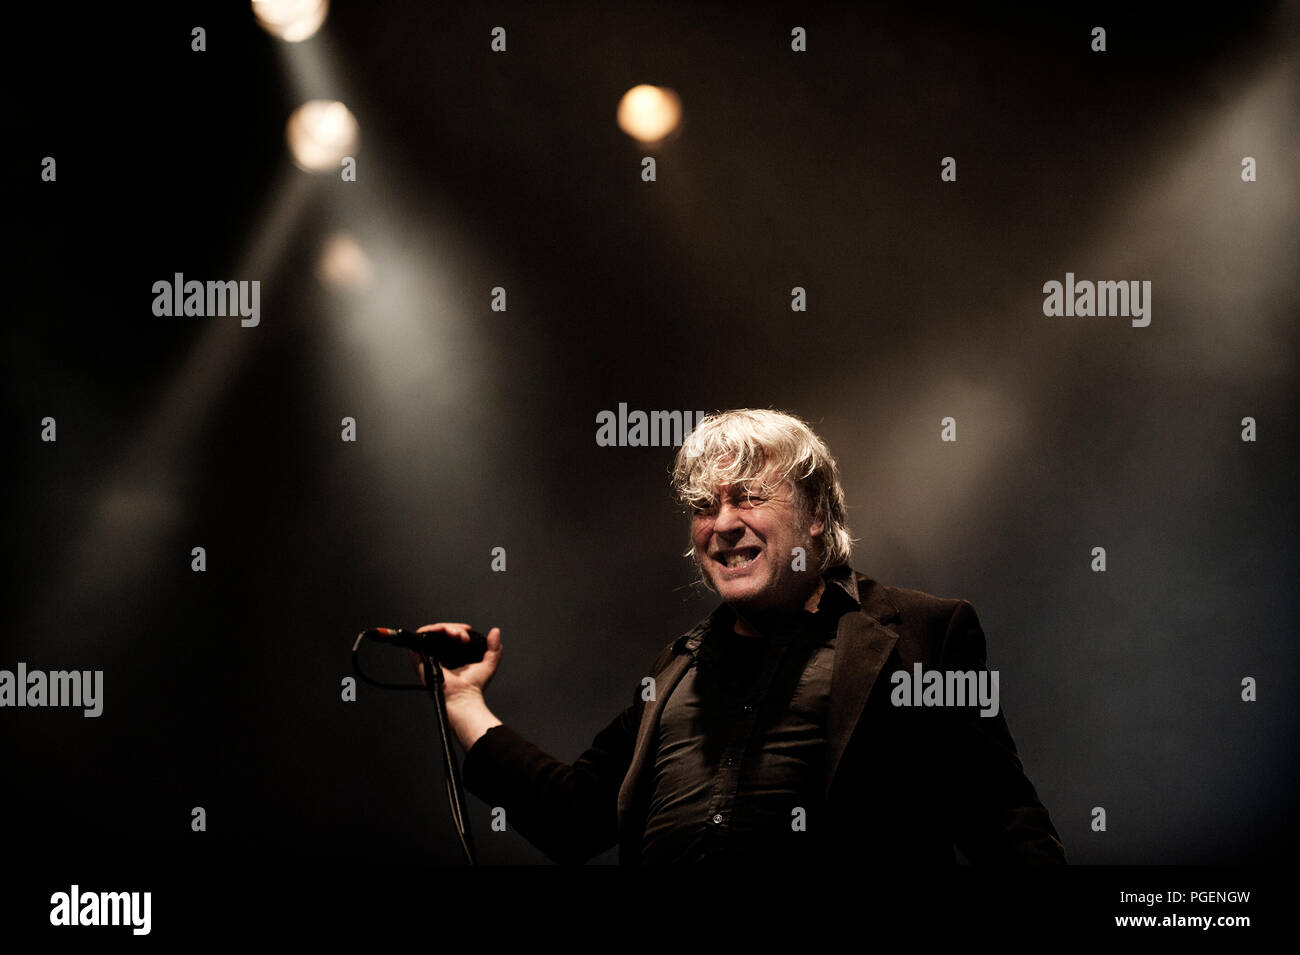 Concert Of The Belgian Rock Singer Arno Celebrating His 65th Birthday In Birth Town Ostend 22 05 2014